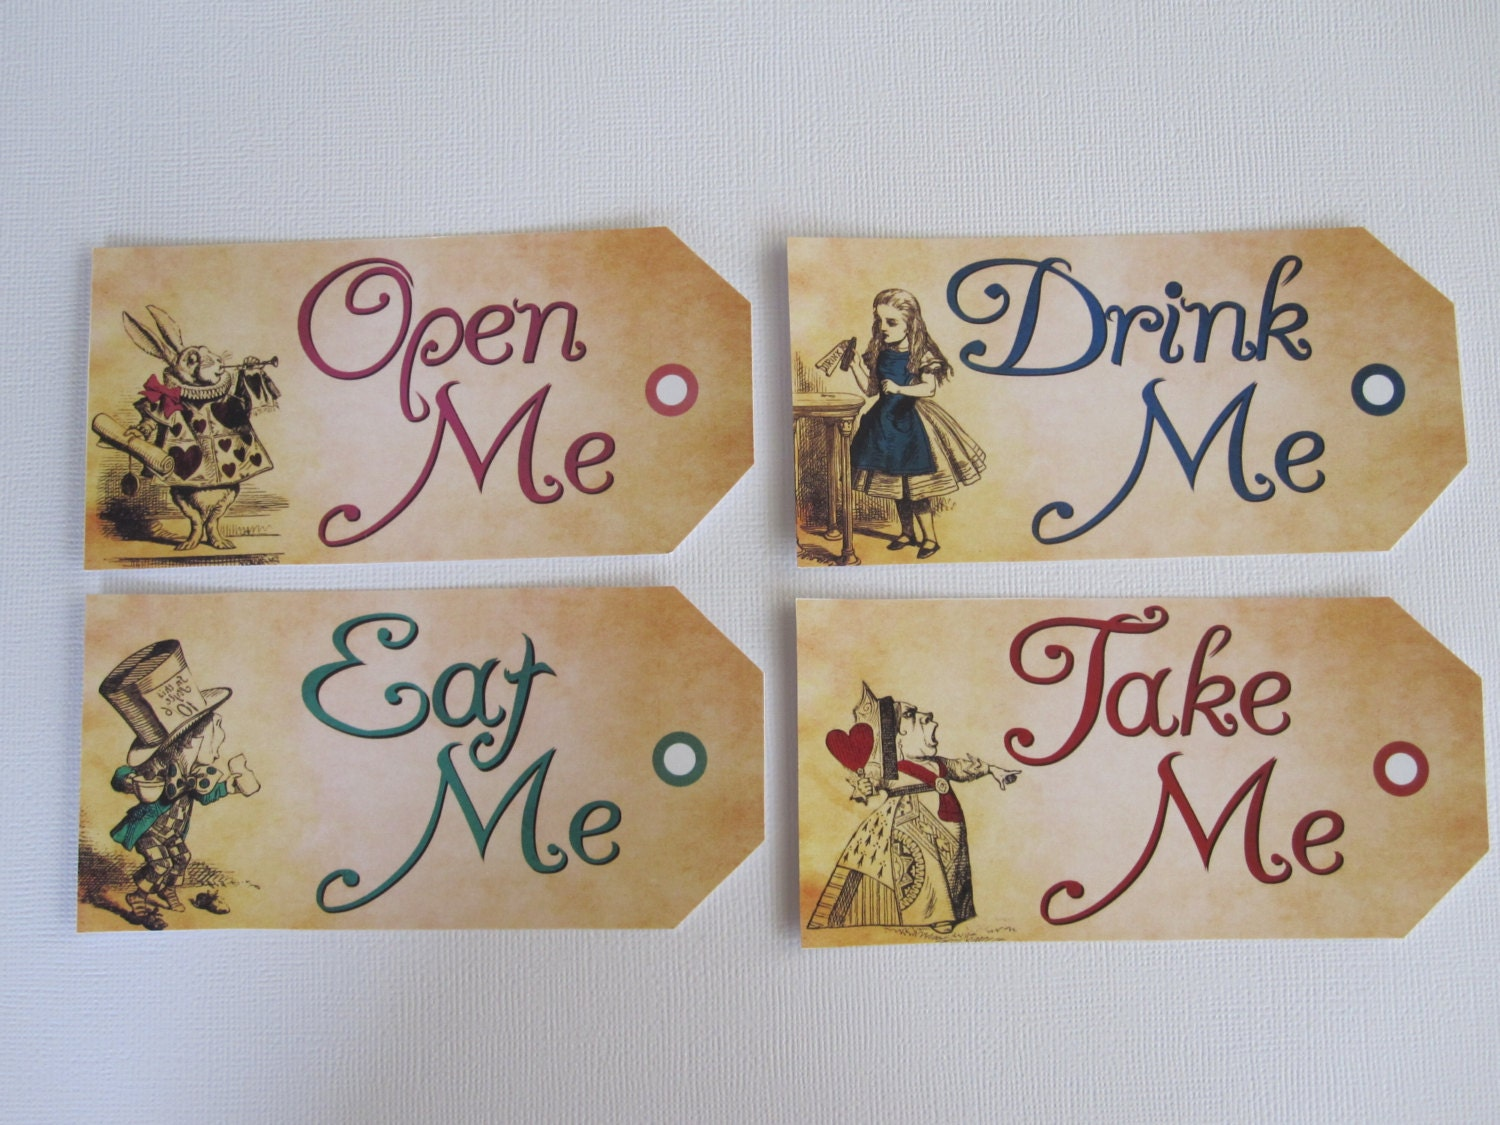 alice in wonderland tags template - eat me tags drink me tags take me tags open me tags